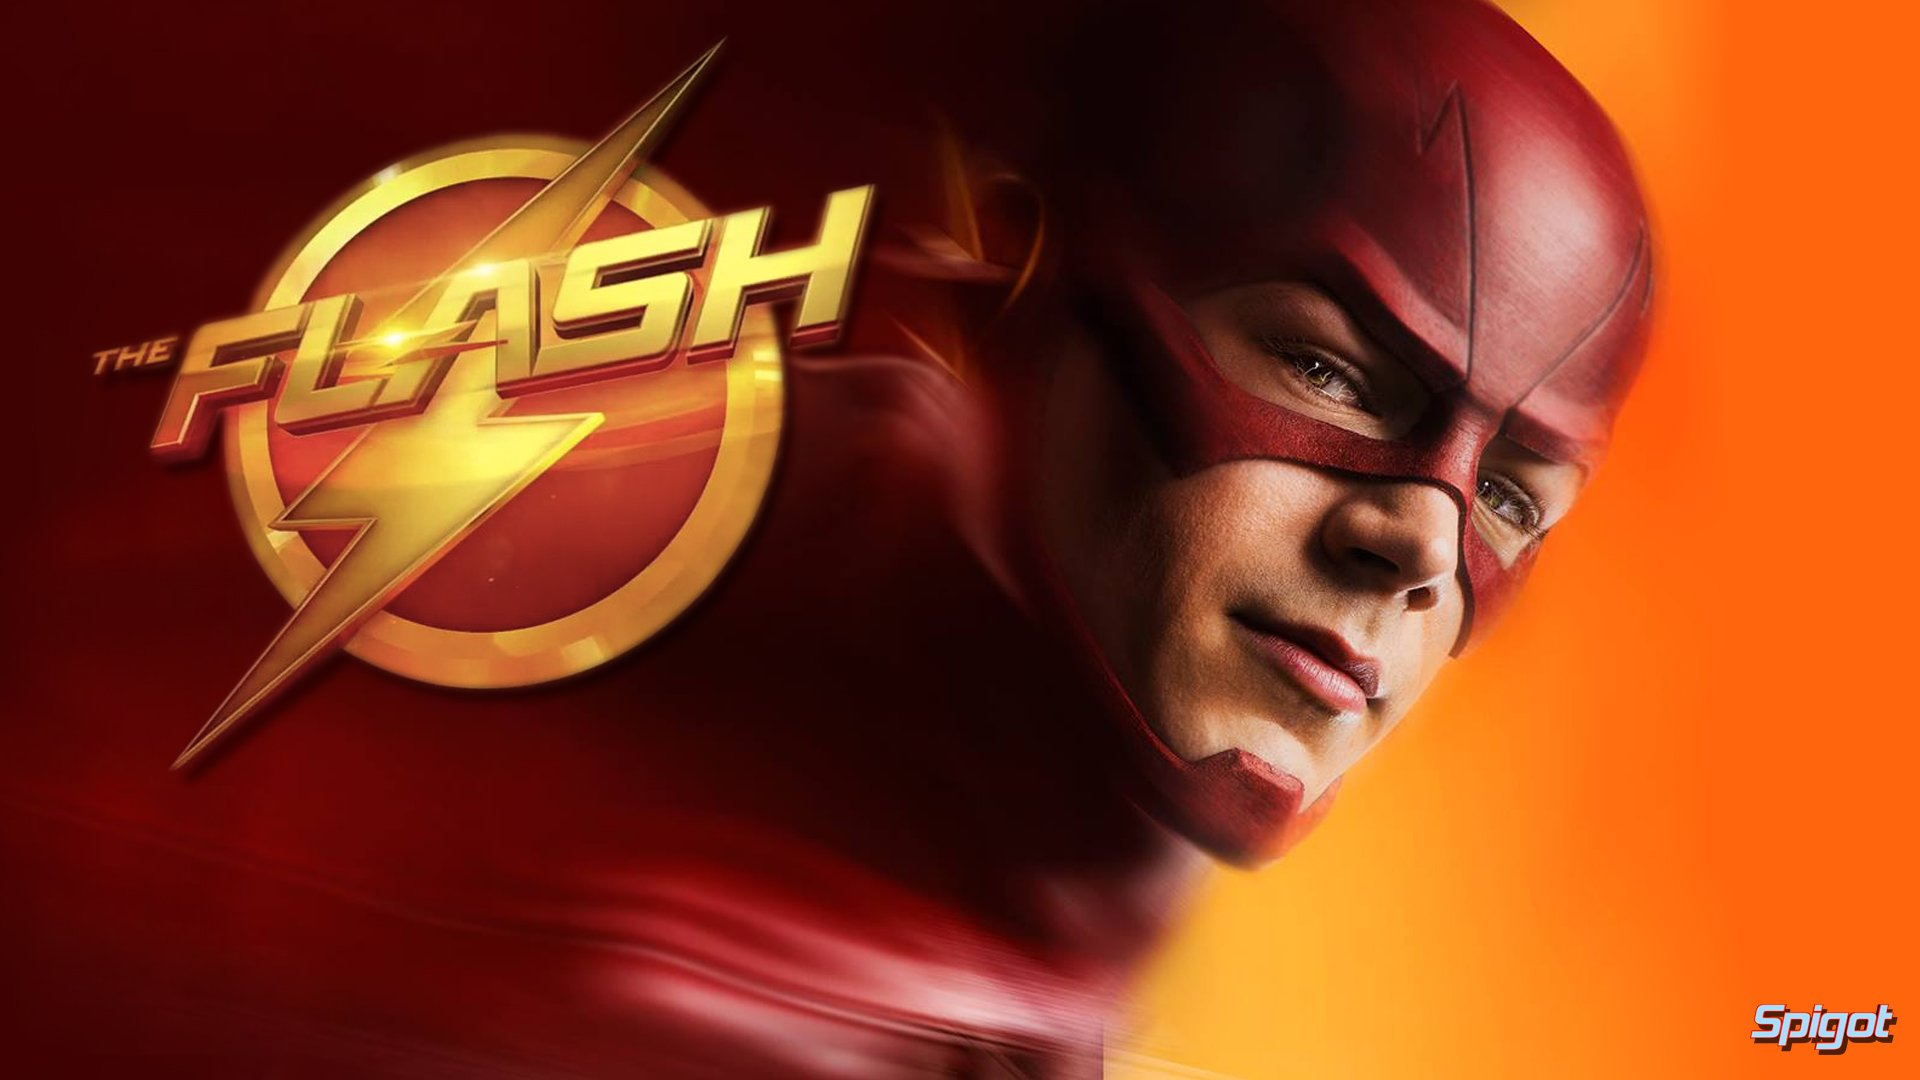 THE FLASH superhero drama action series mystery sci fi dc comics comic 1920x1080